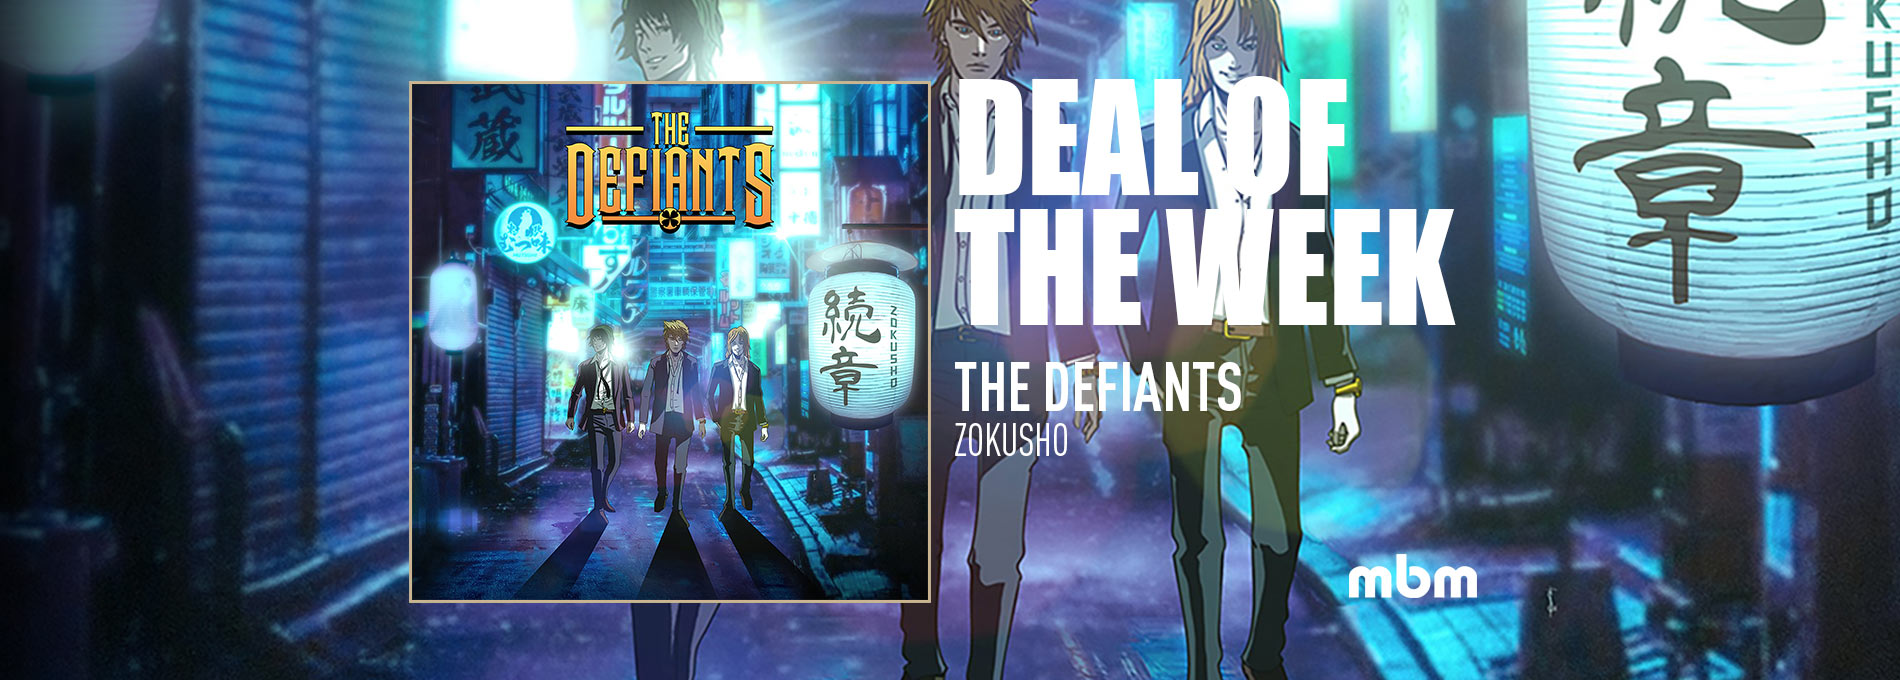 Deal Of The Week: THE DEFIANTS - Zokusho